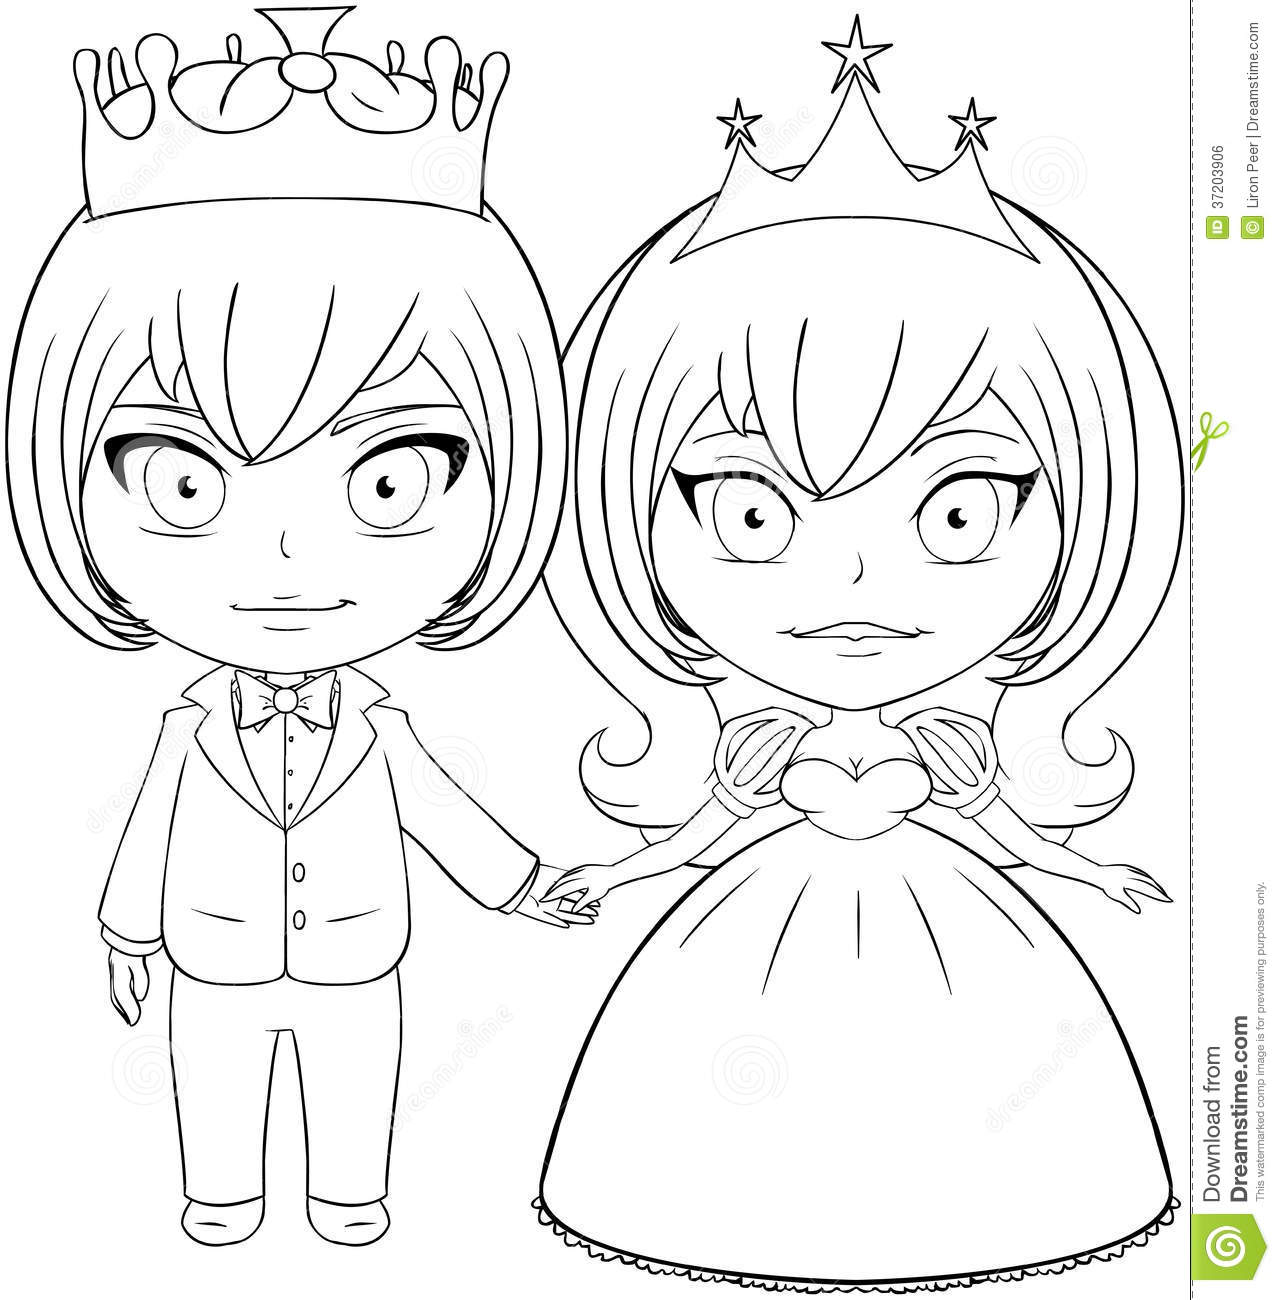 prince and princess coloring page 2 stock vector image 37203906